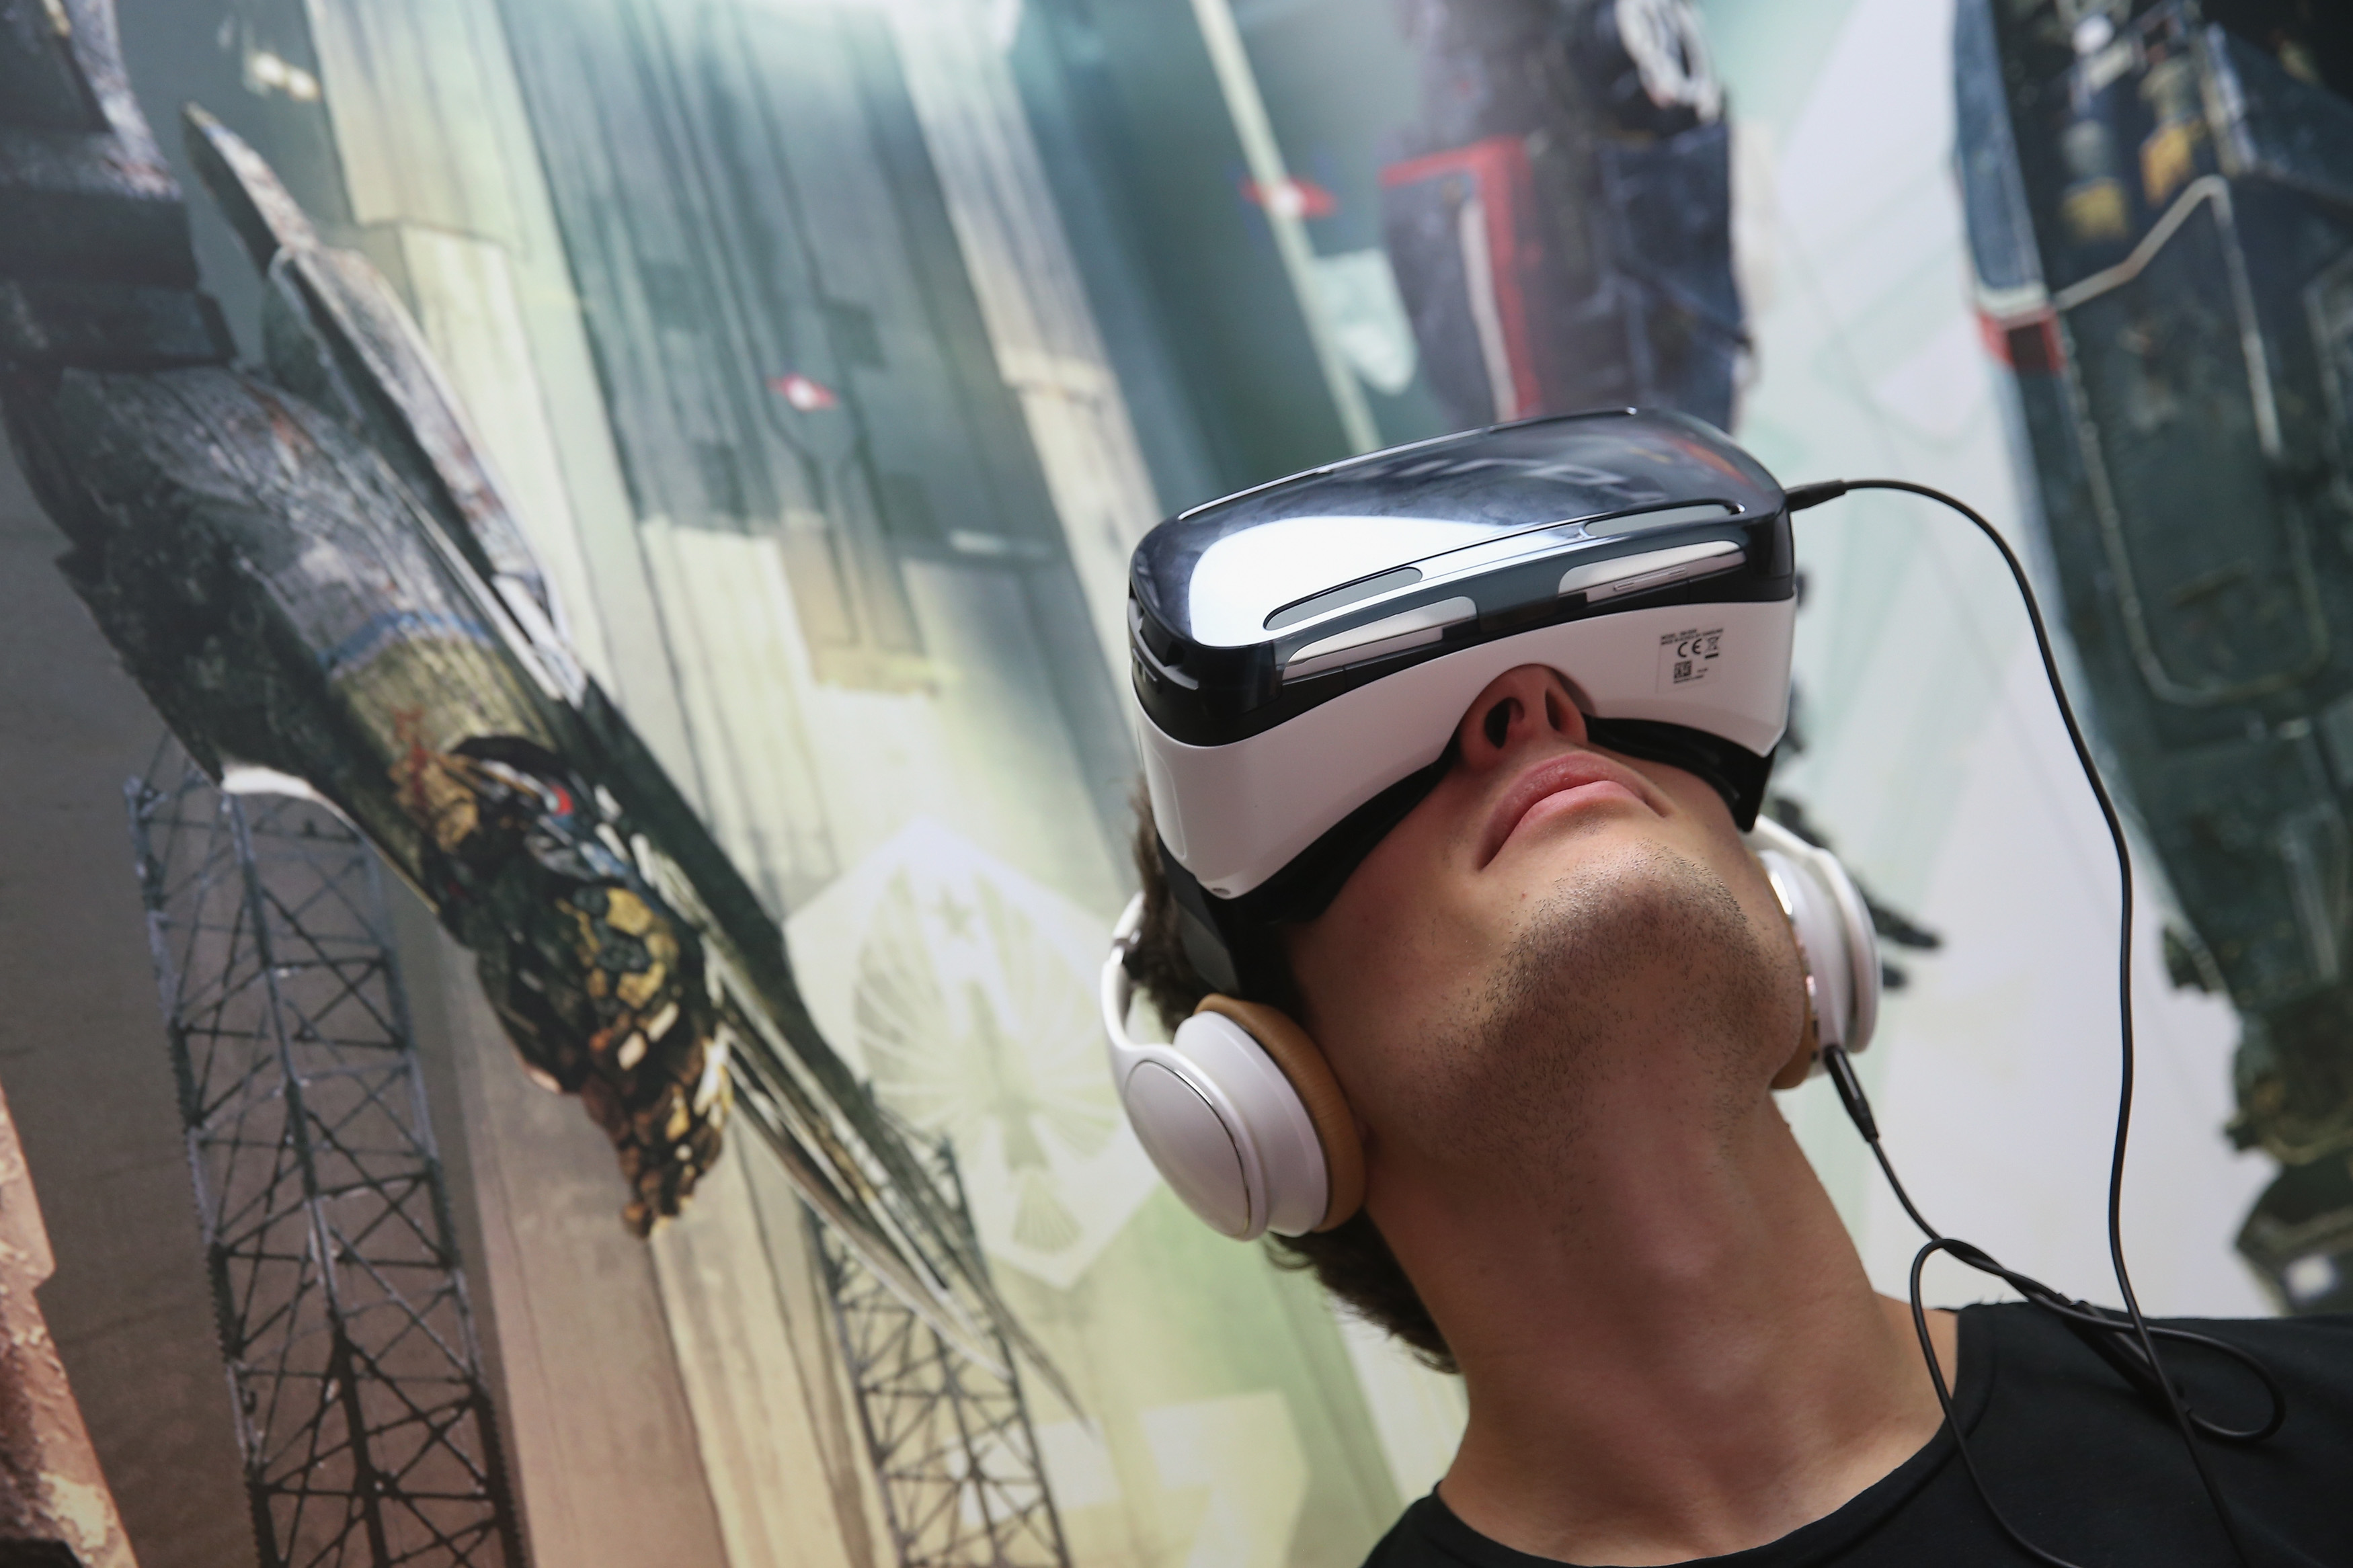 A visitor tries out Gear VR virtual reality goggles amd headphones at the Samsung stand at the 2014 IFA home electronics and appliances trade fair on September 5, 2014 in Berlin.